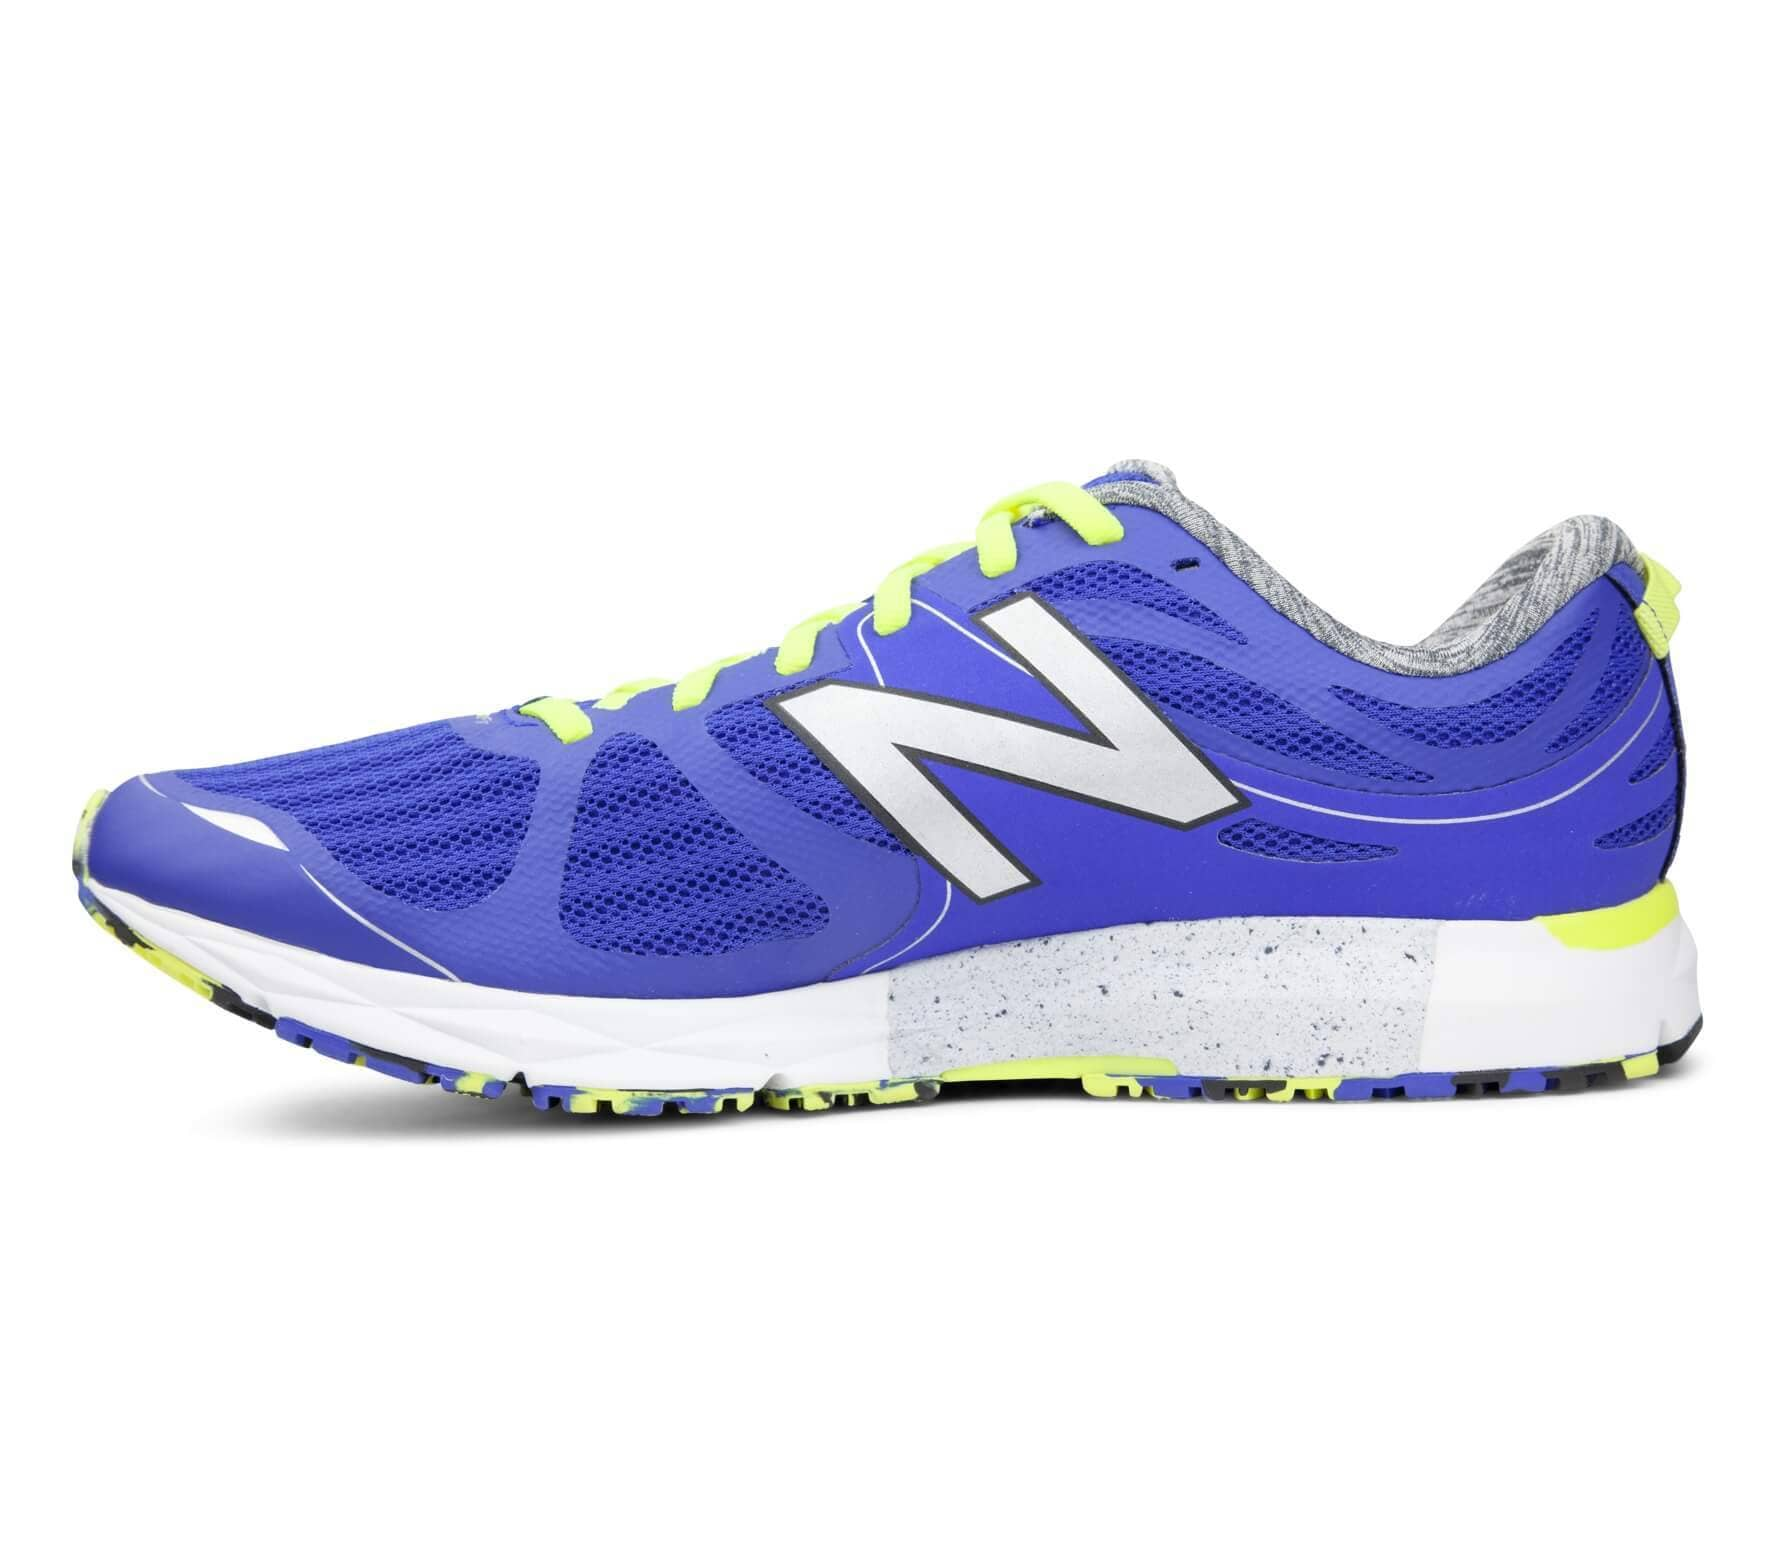 separation shoes c5100 1873a New Balance - NBX 1500 V2 men's running shoes (blue-yellow)